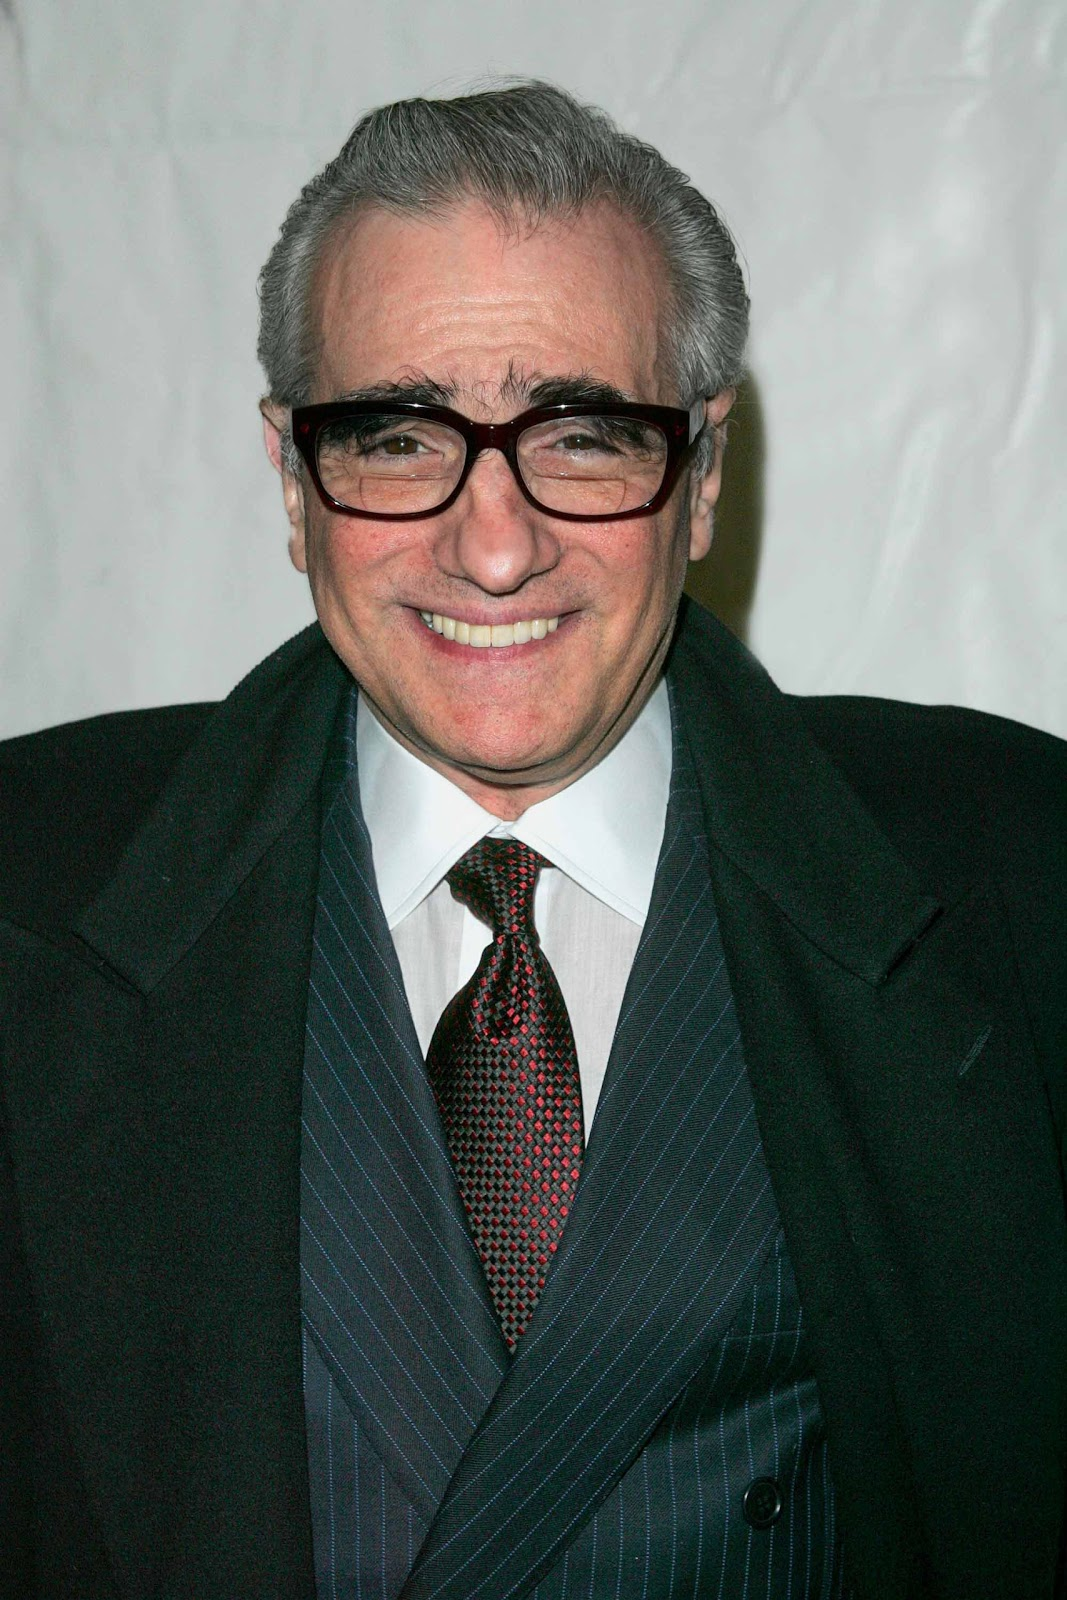 martin scorsese Arguably one of the greatest directors of all time, martin scorsese made some of the most daring films in cinema history his impressive body of work was a meditation on the visceral nature of violence and male relationships that often reflected his own personal angst growing up in the violent streets of manhattan's lower east side.